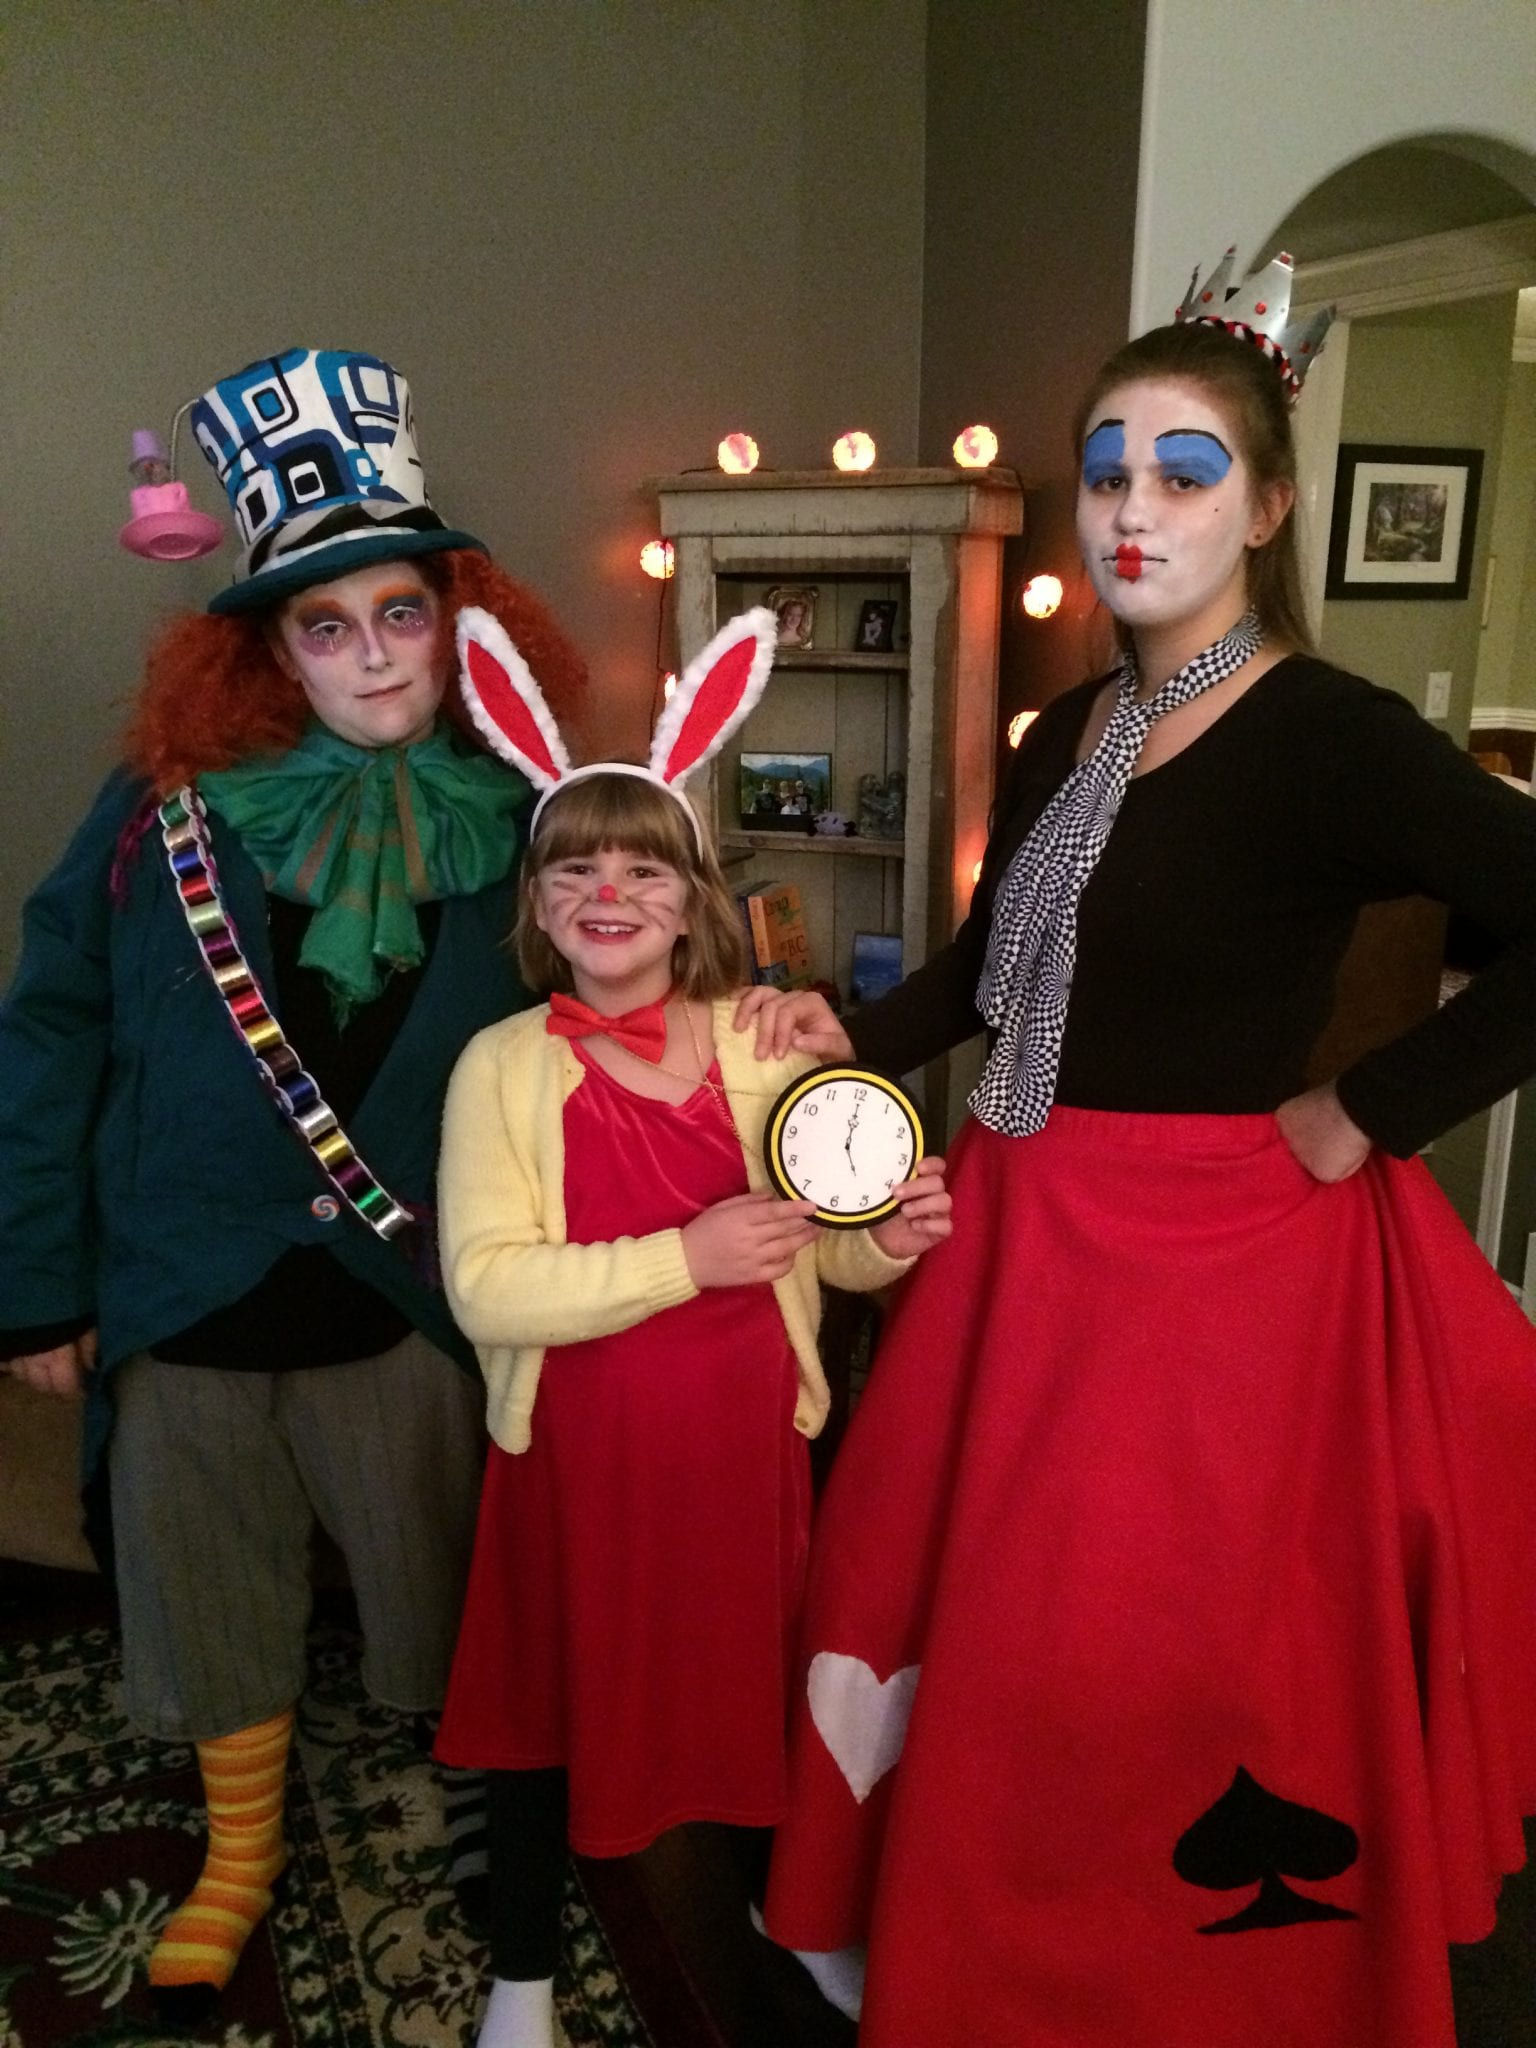 Tracey's three children dressed up in an Alice in Wonderland theme for one Halloween.